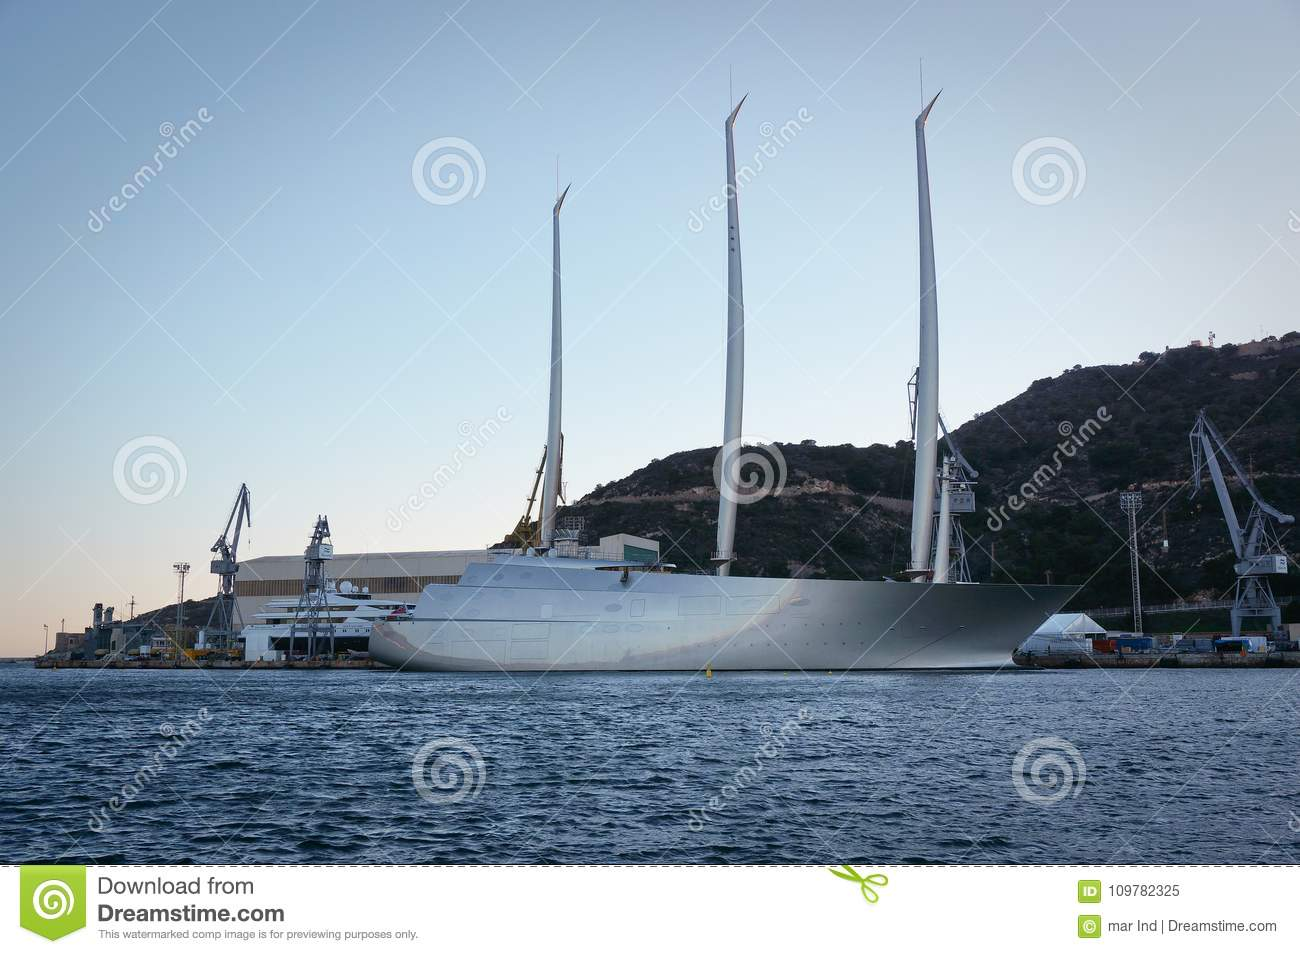 The Biggest Sailing Yacht In The World Editorial Image Image Of